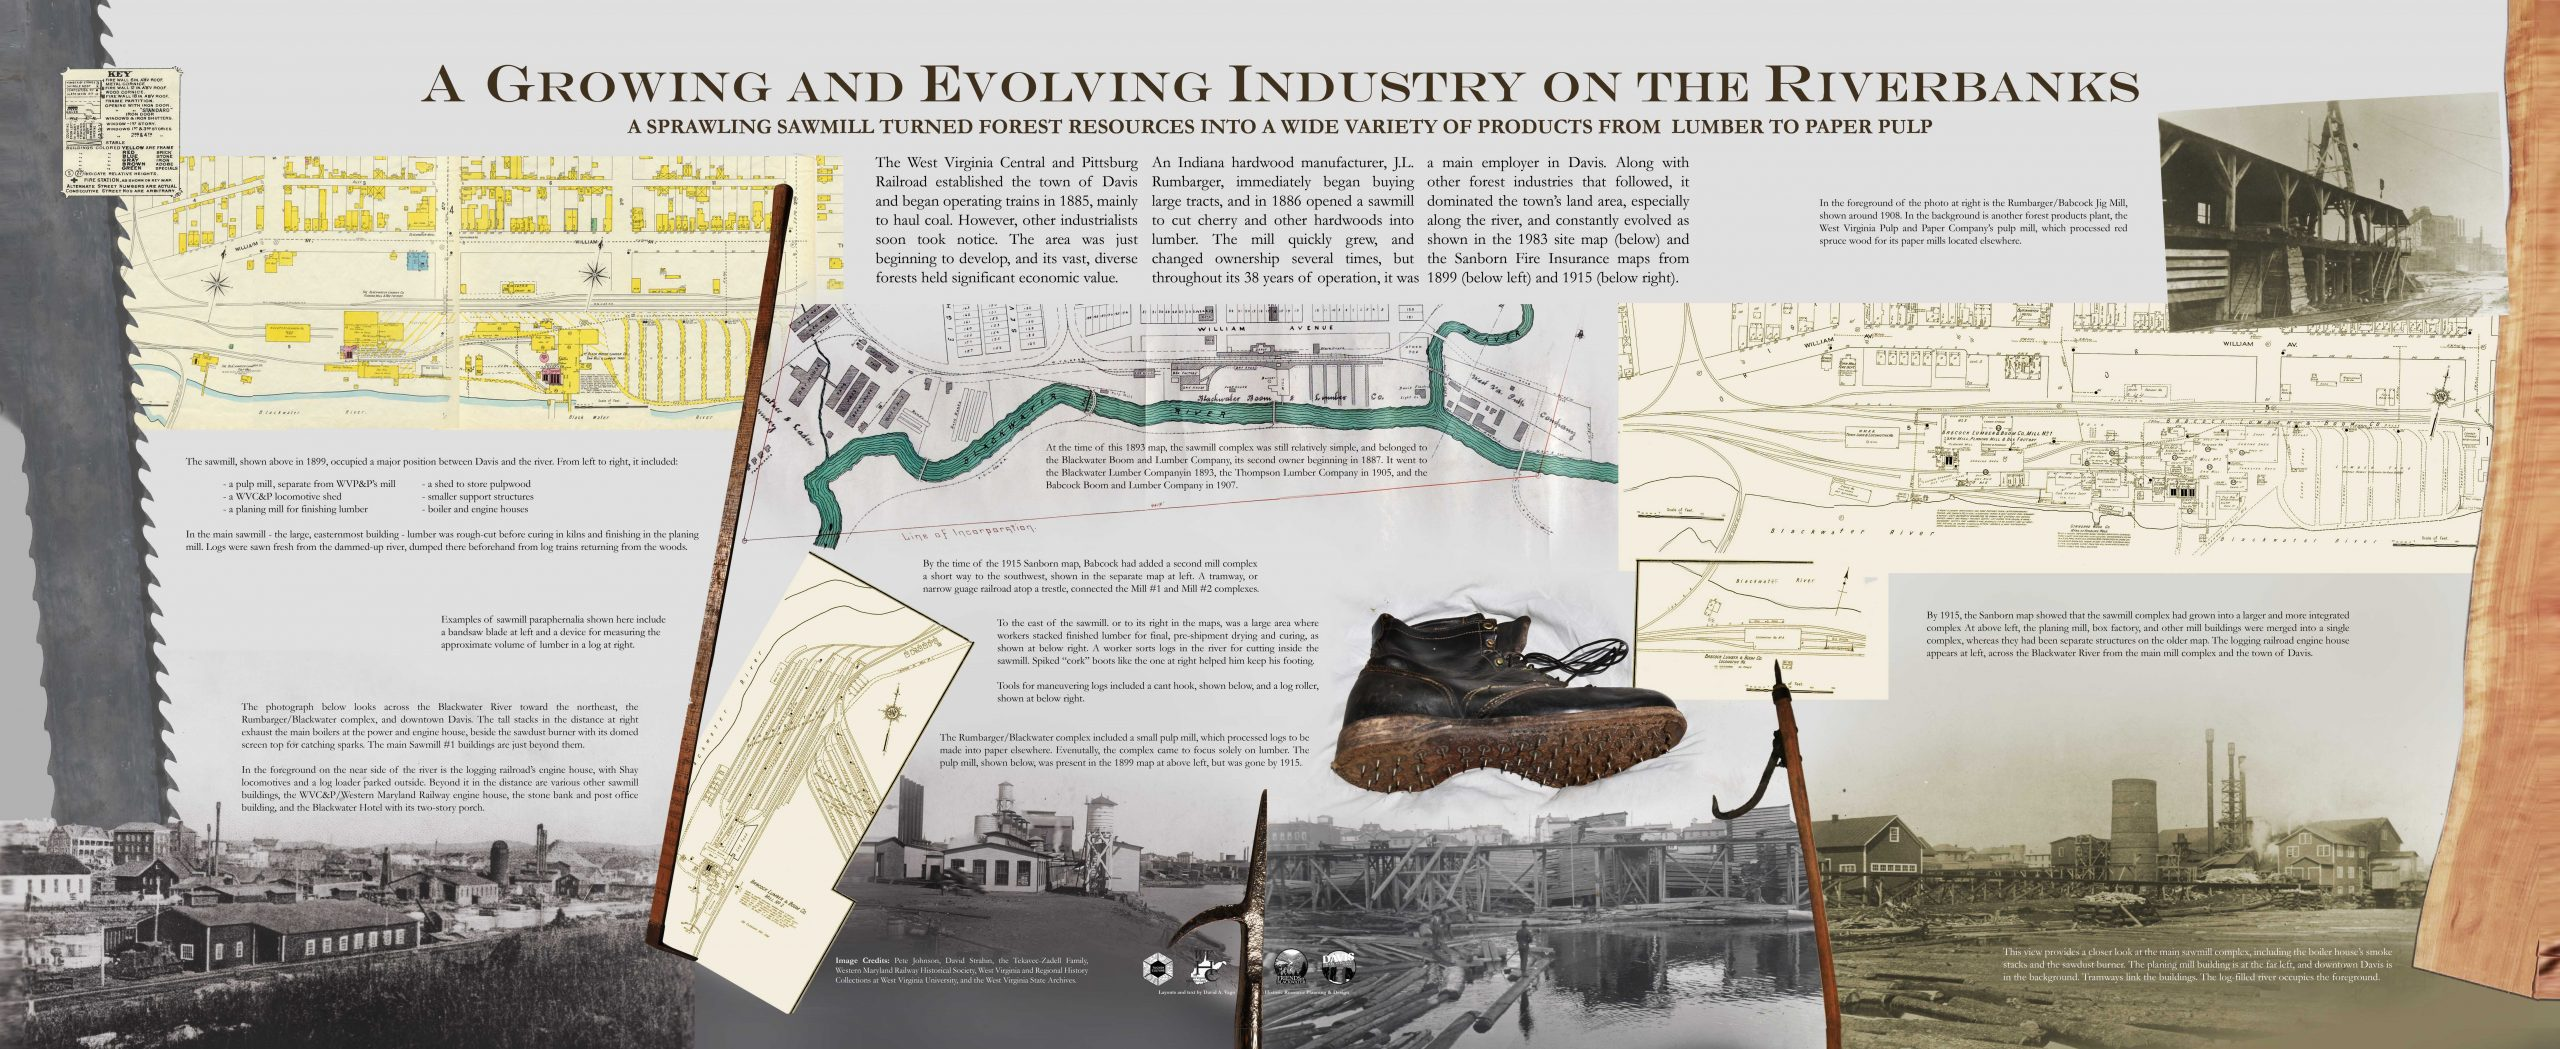 A Growing and Evolving Industry On the Riverbank